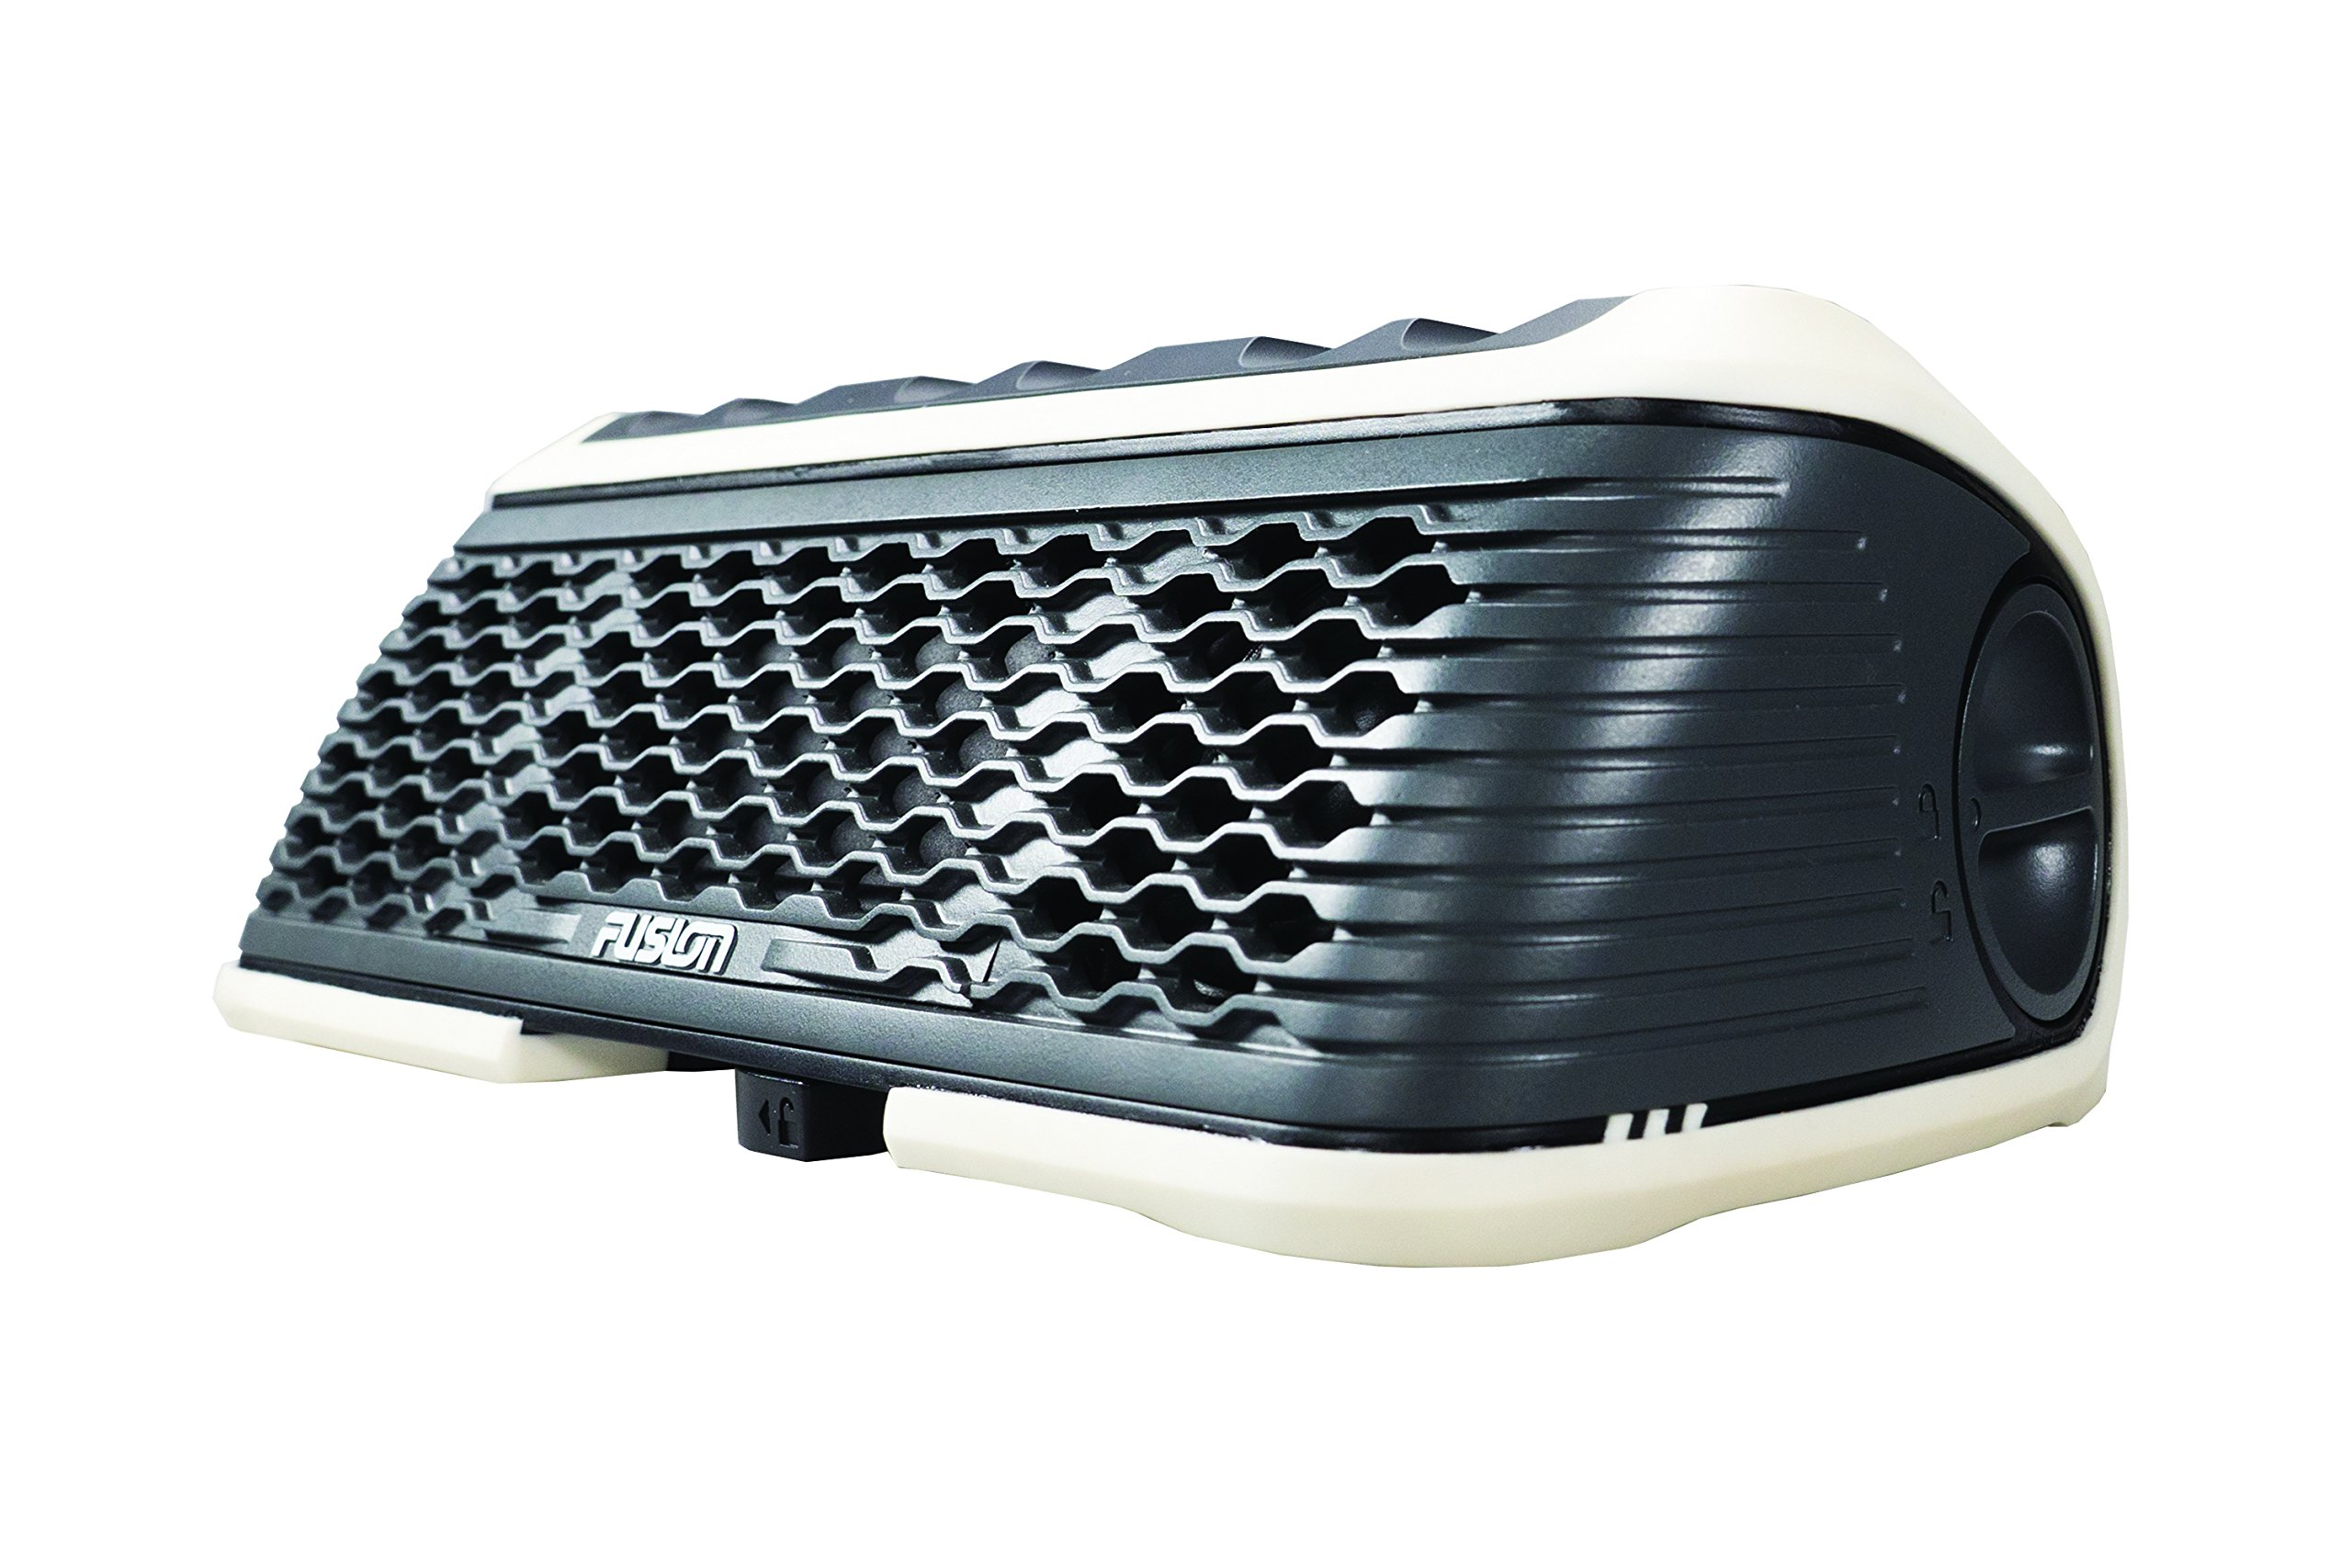 Fusion Entertainment WS-SA150W StereoActive Watersports AM/FM/WX/Bluetooth/USB Portable Stereo, White by Fusion Entertainment